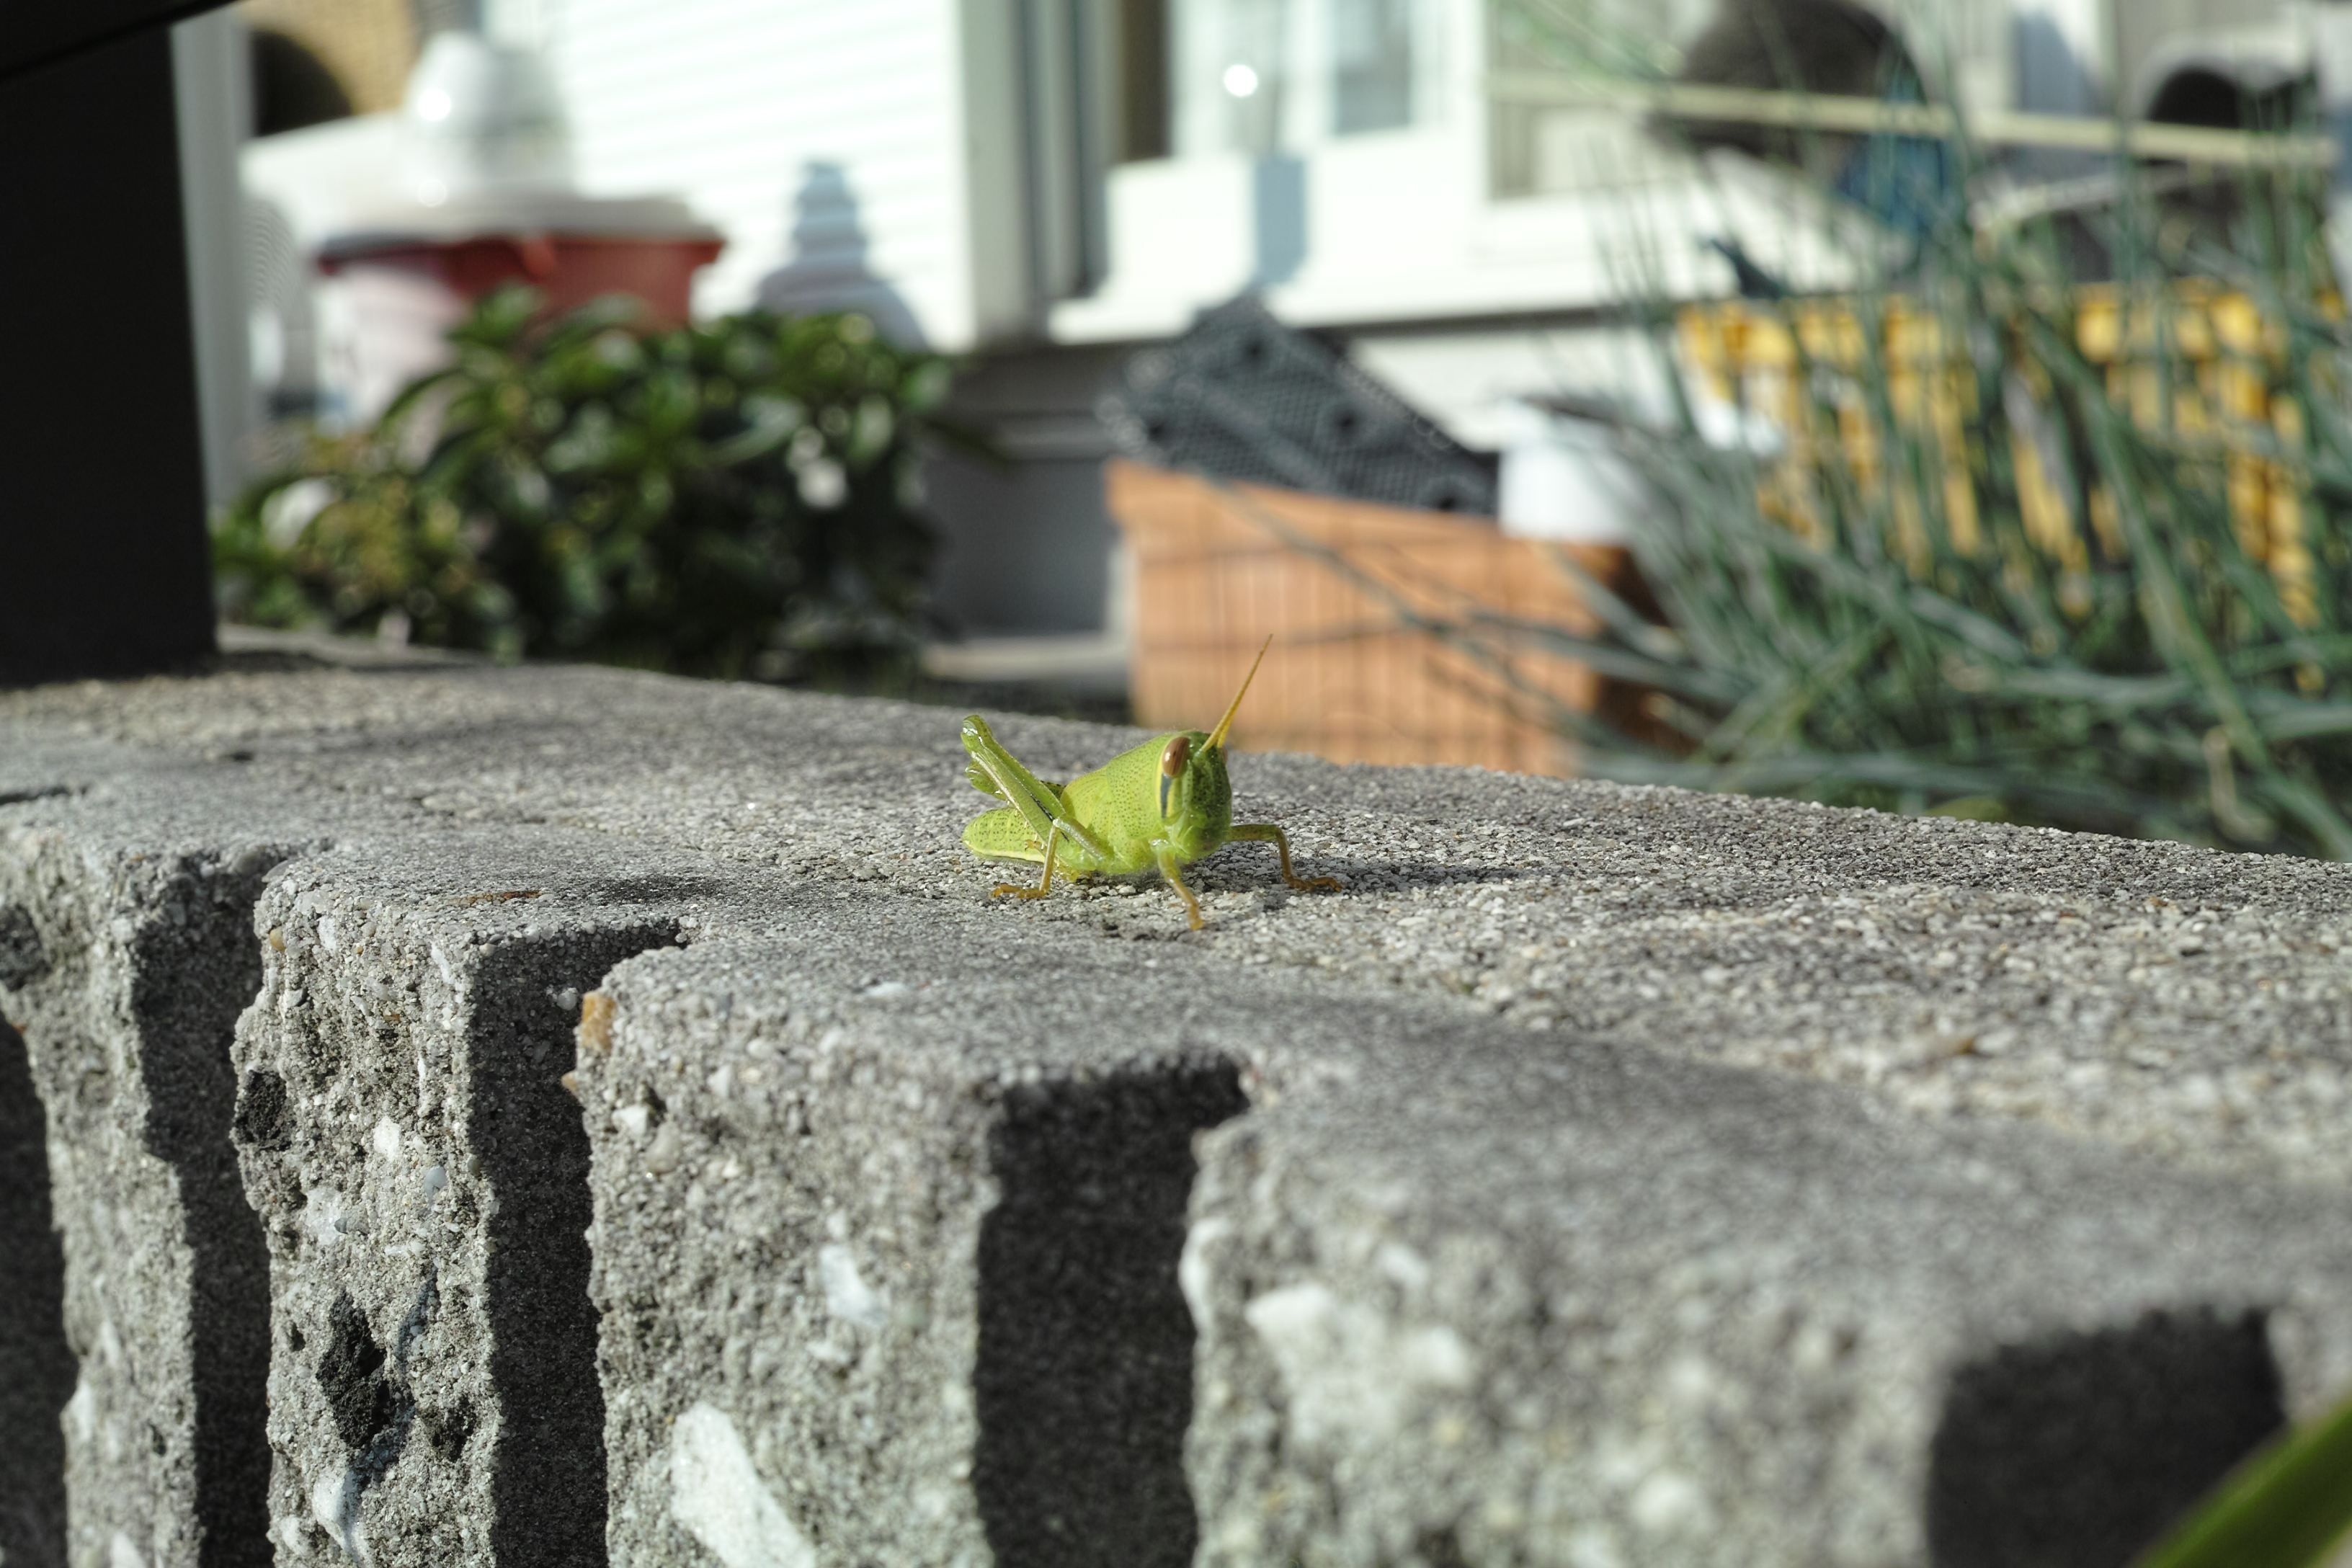 Grasshopper in the parking